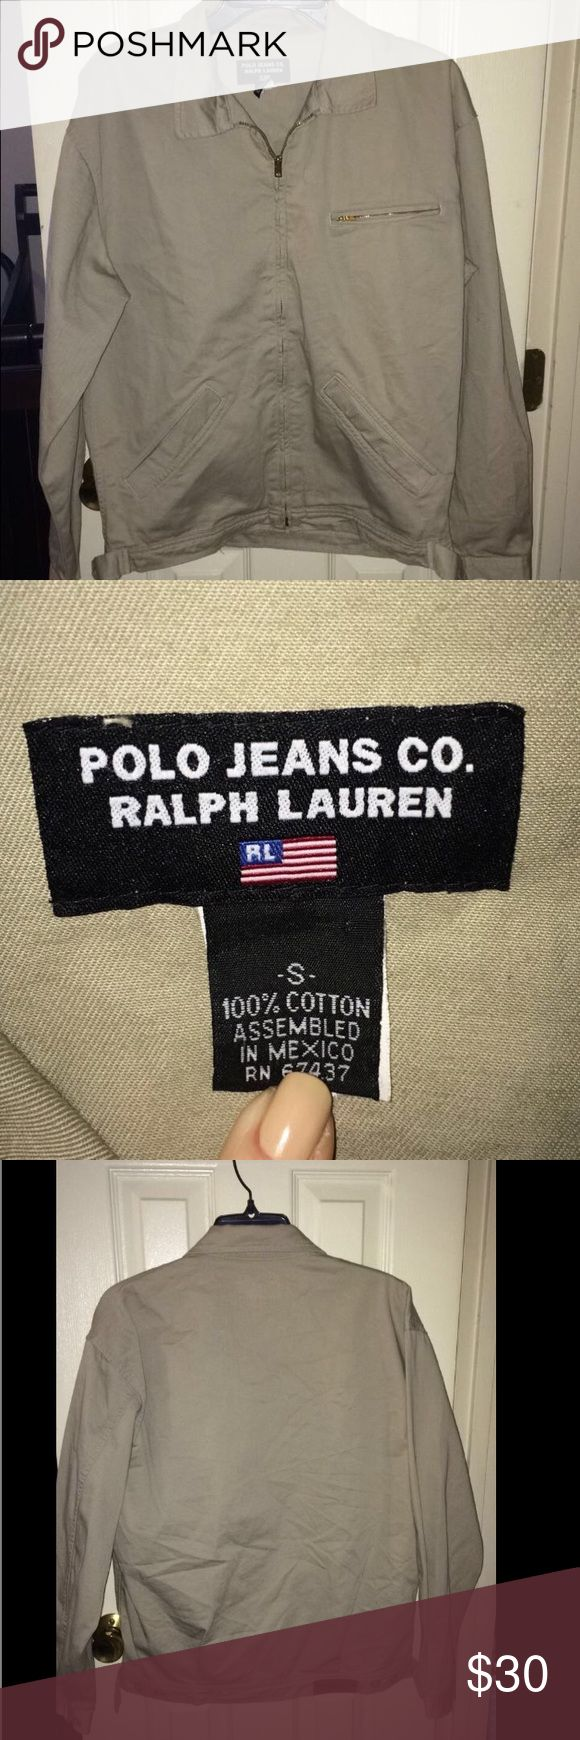 Vintage Polo Jeans co. Ralph Lauren jacket Beige Jacket Size SMALL Polo by Ralph Lauren Jackets & Coats